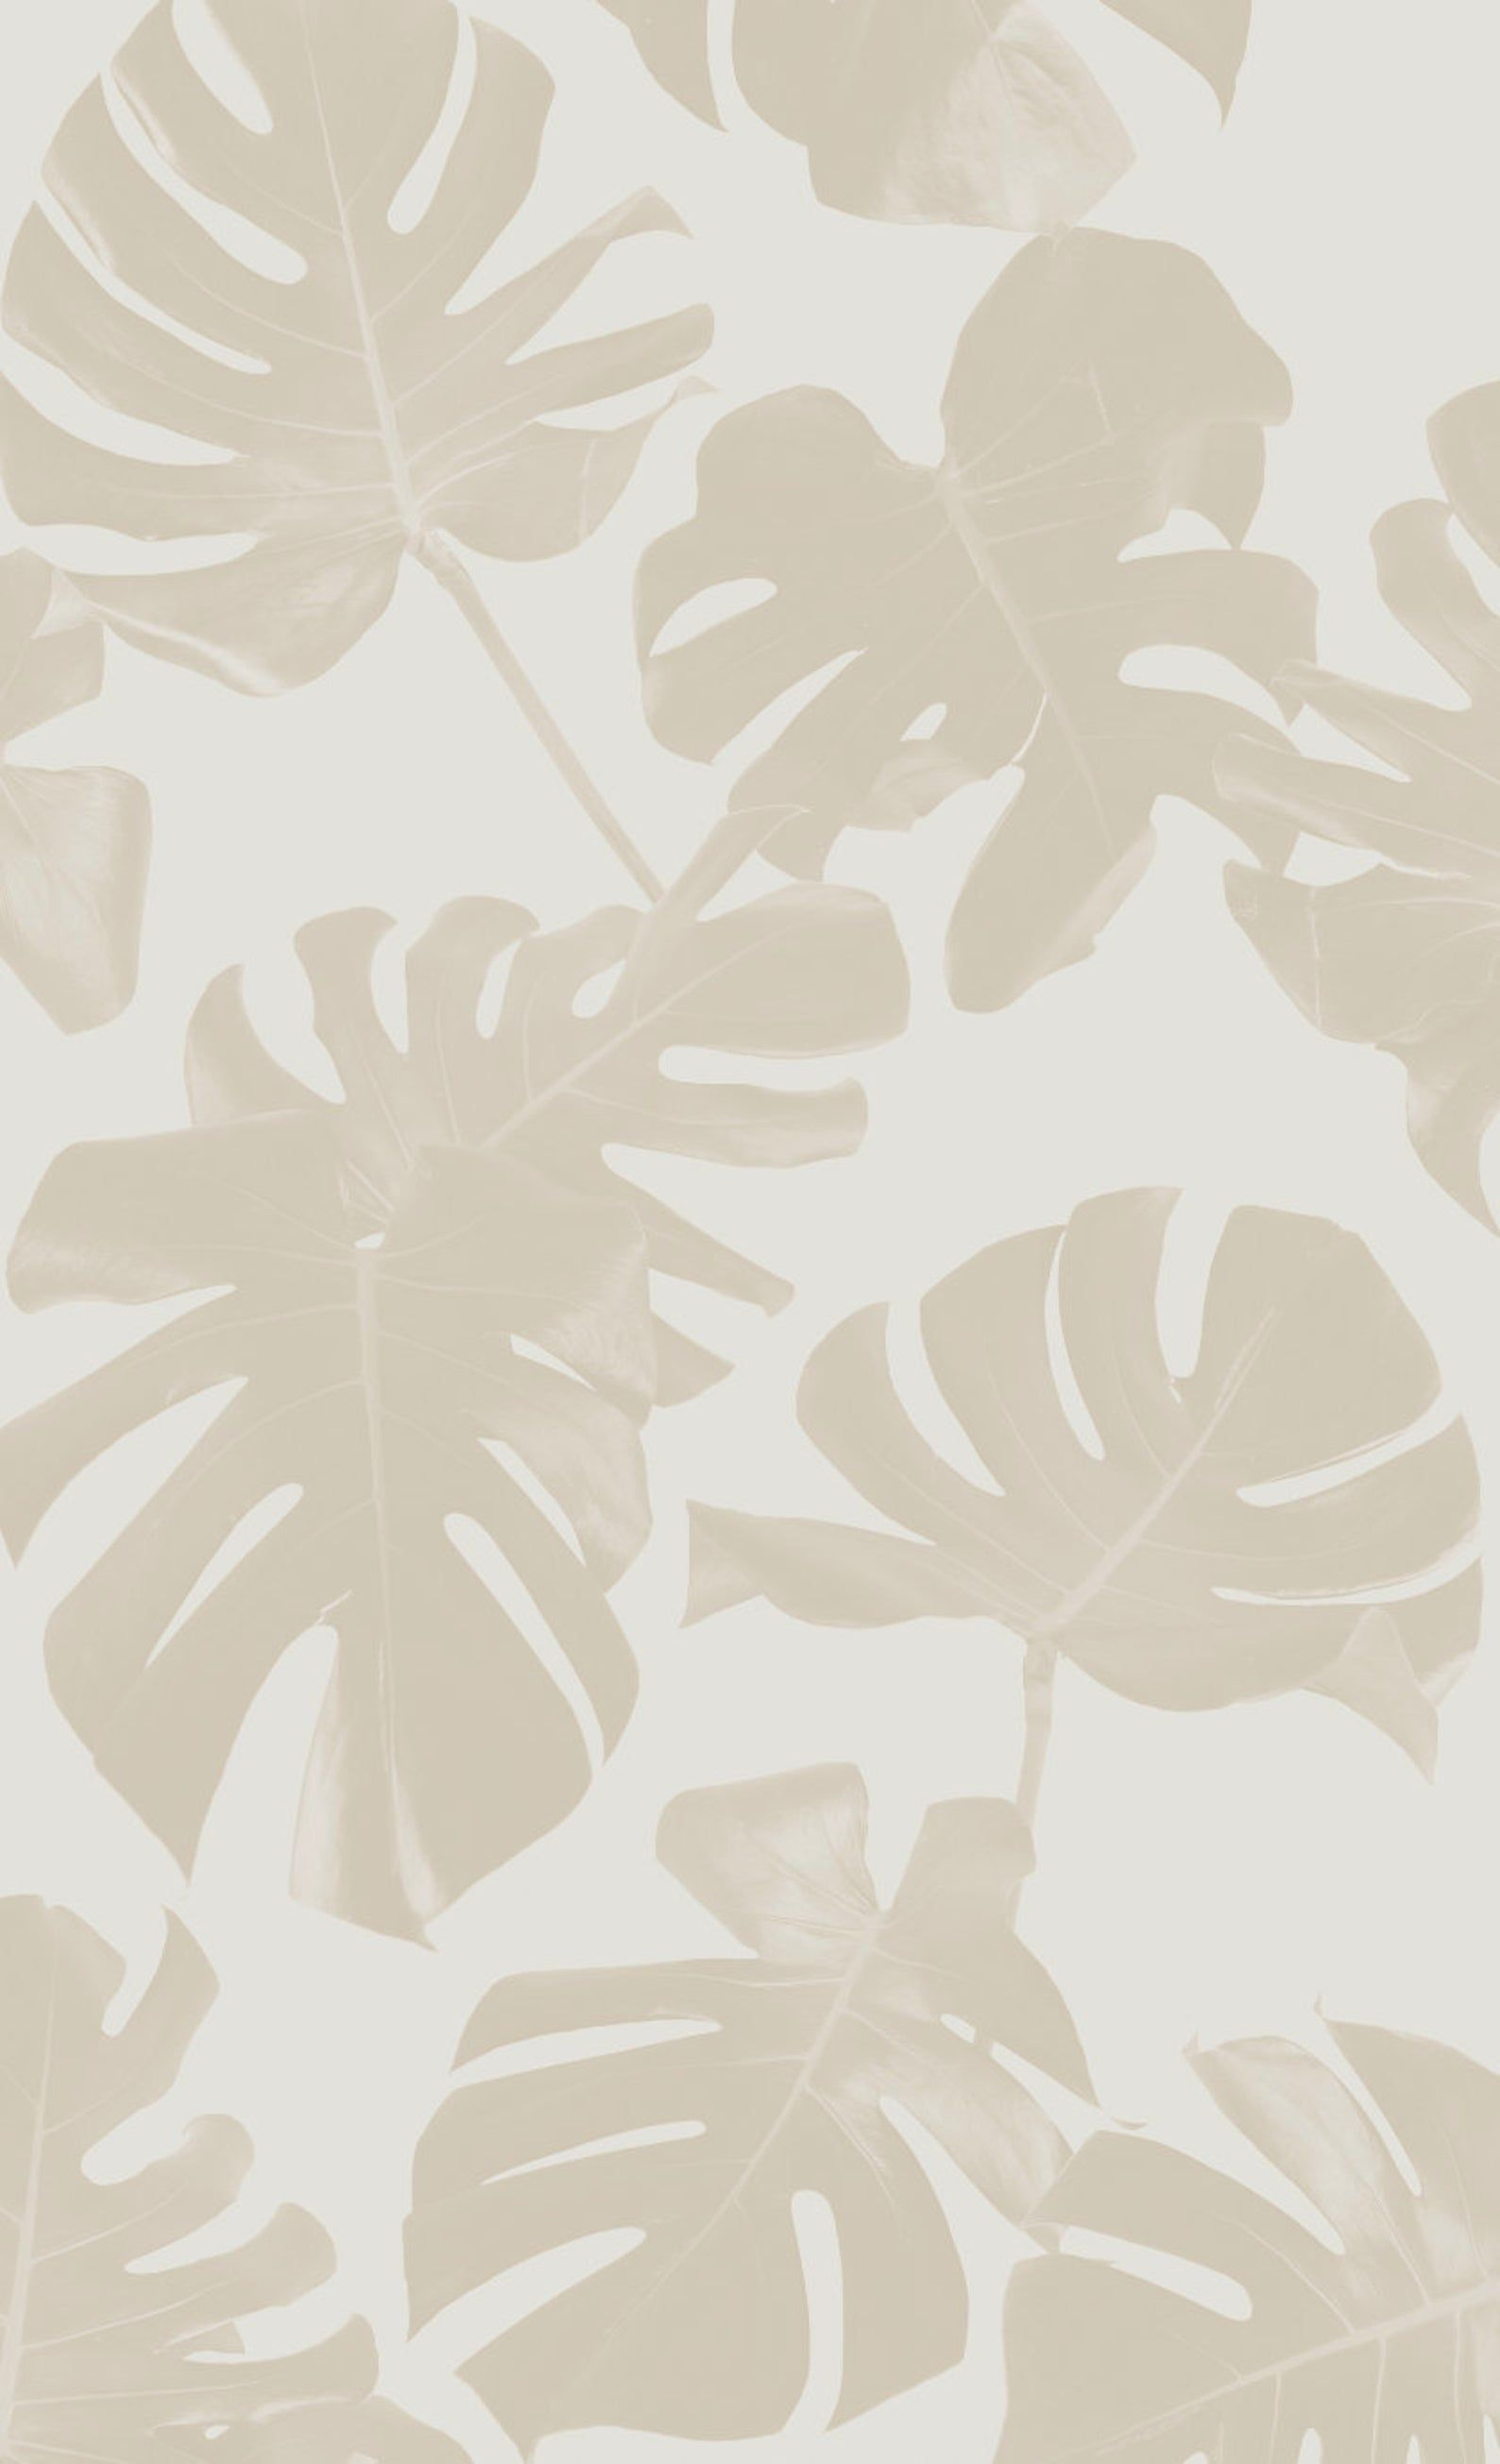 Basic Monstera Leaf REMOVABLE Fabric Wallpaper - Peel & Stick!